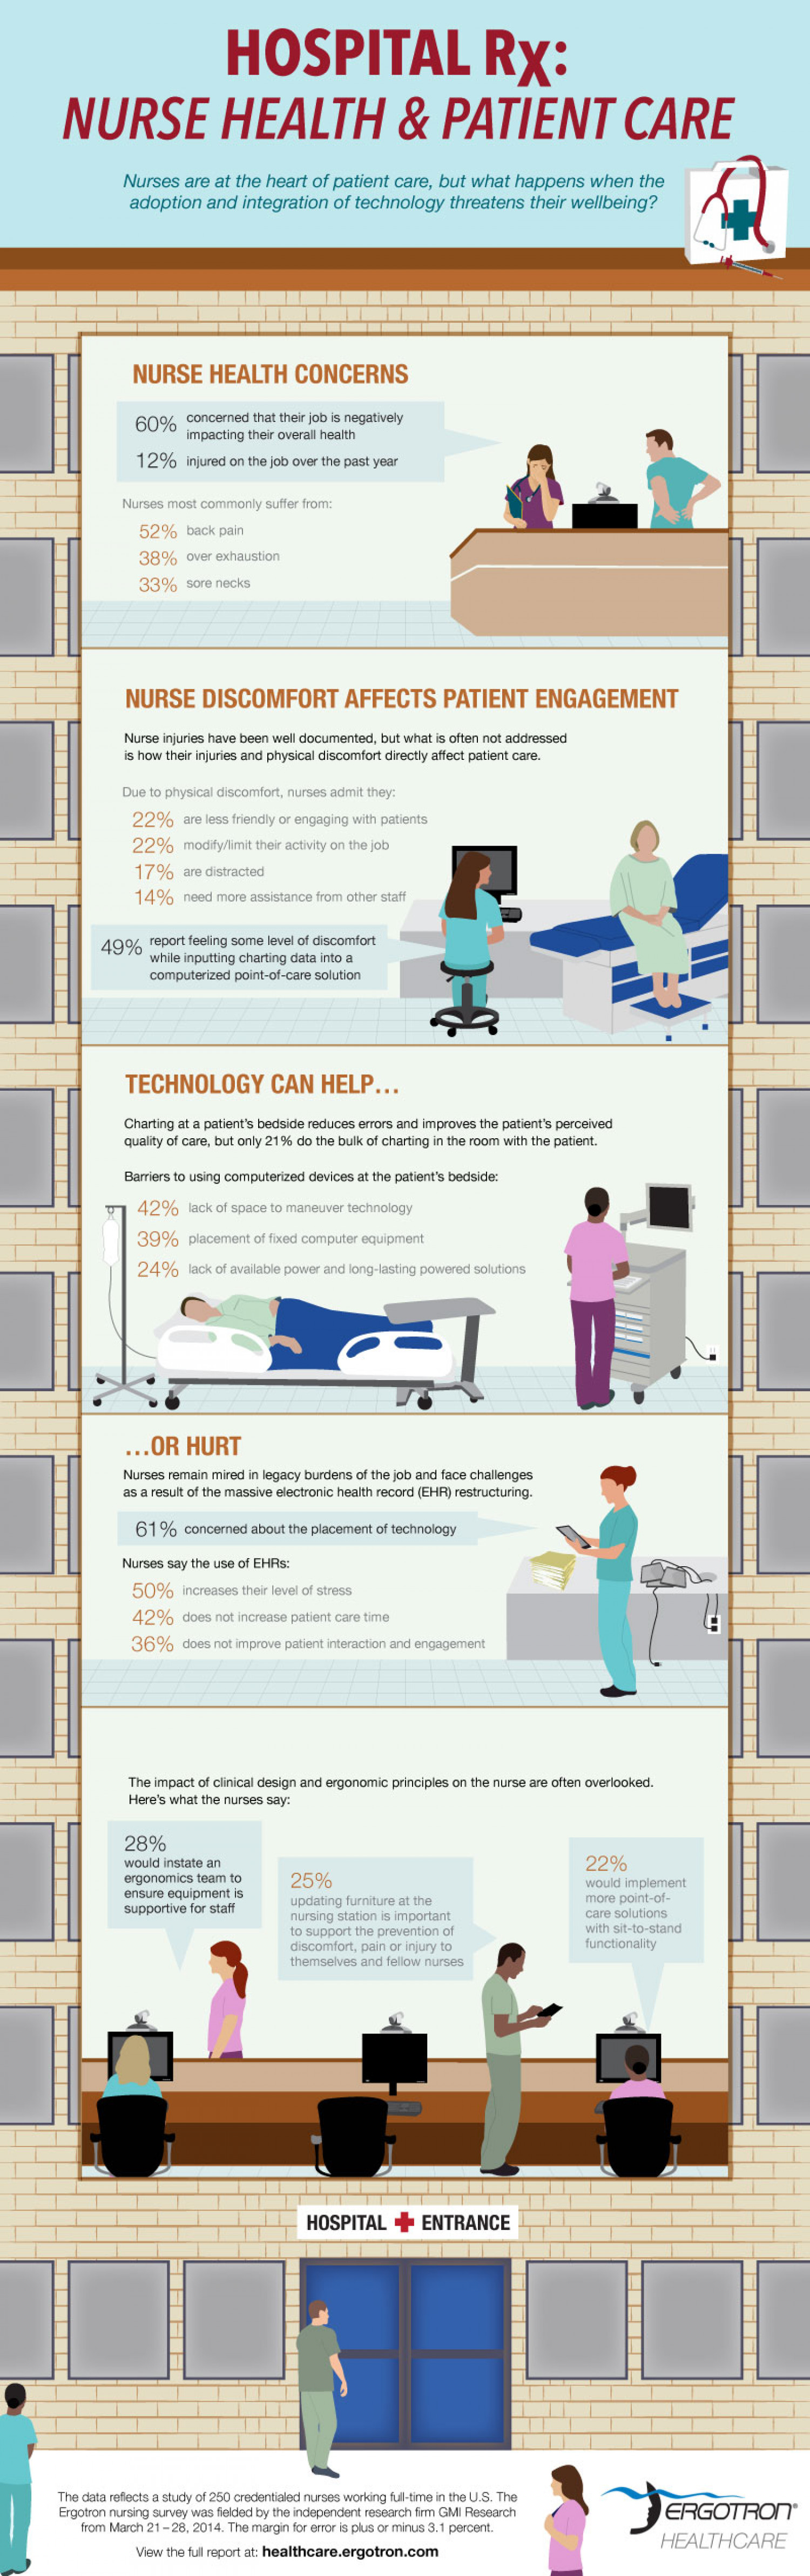 Hospital Rx: Nurse Health & Patient Care Infographic